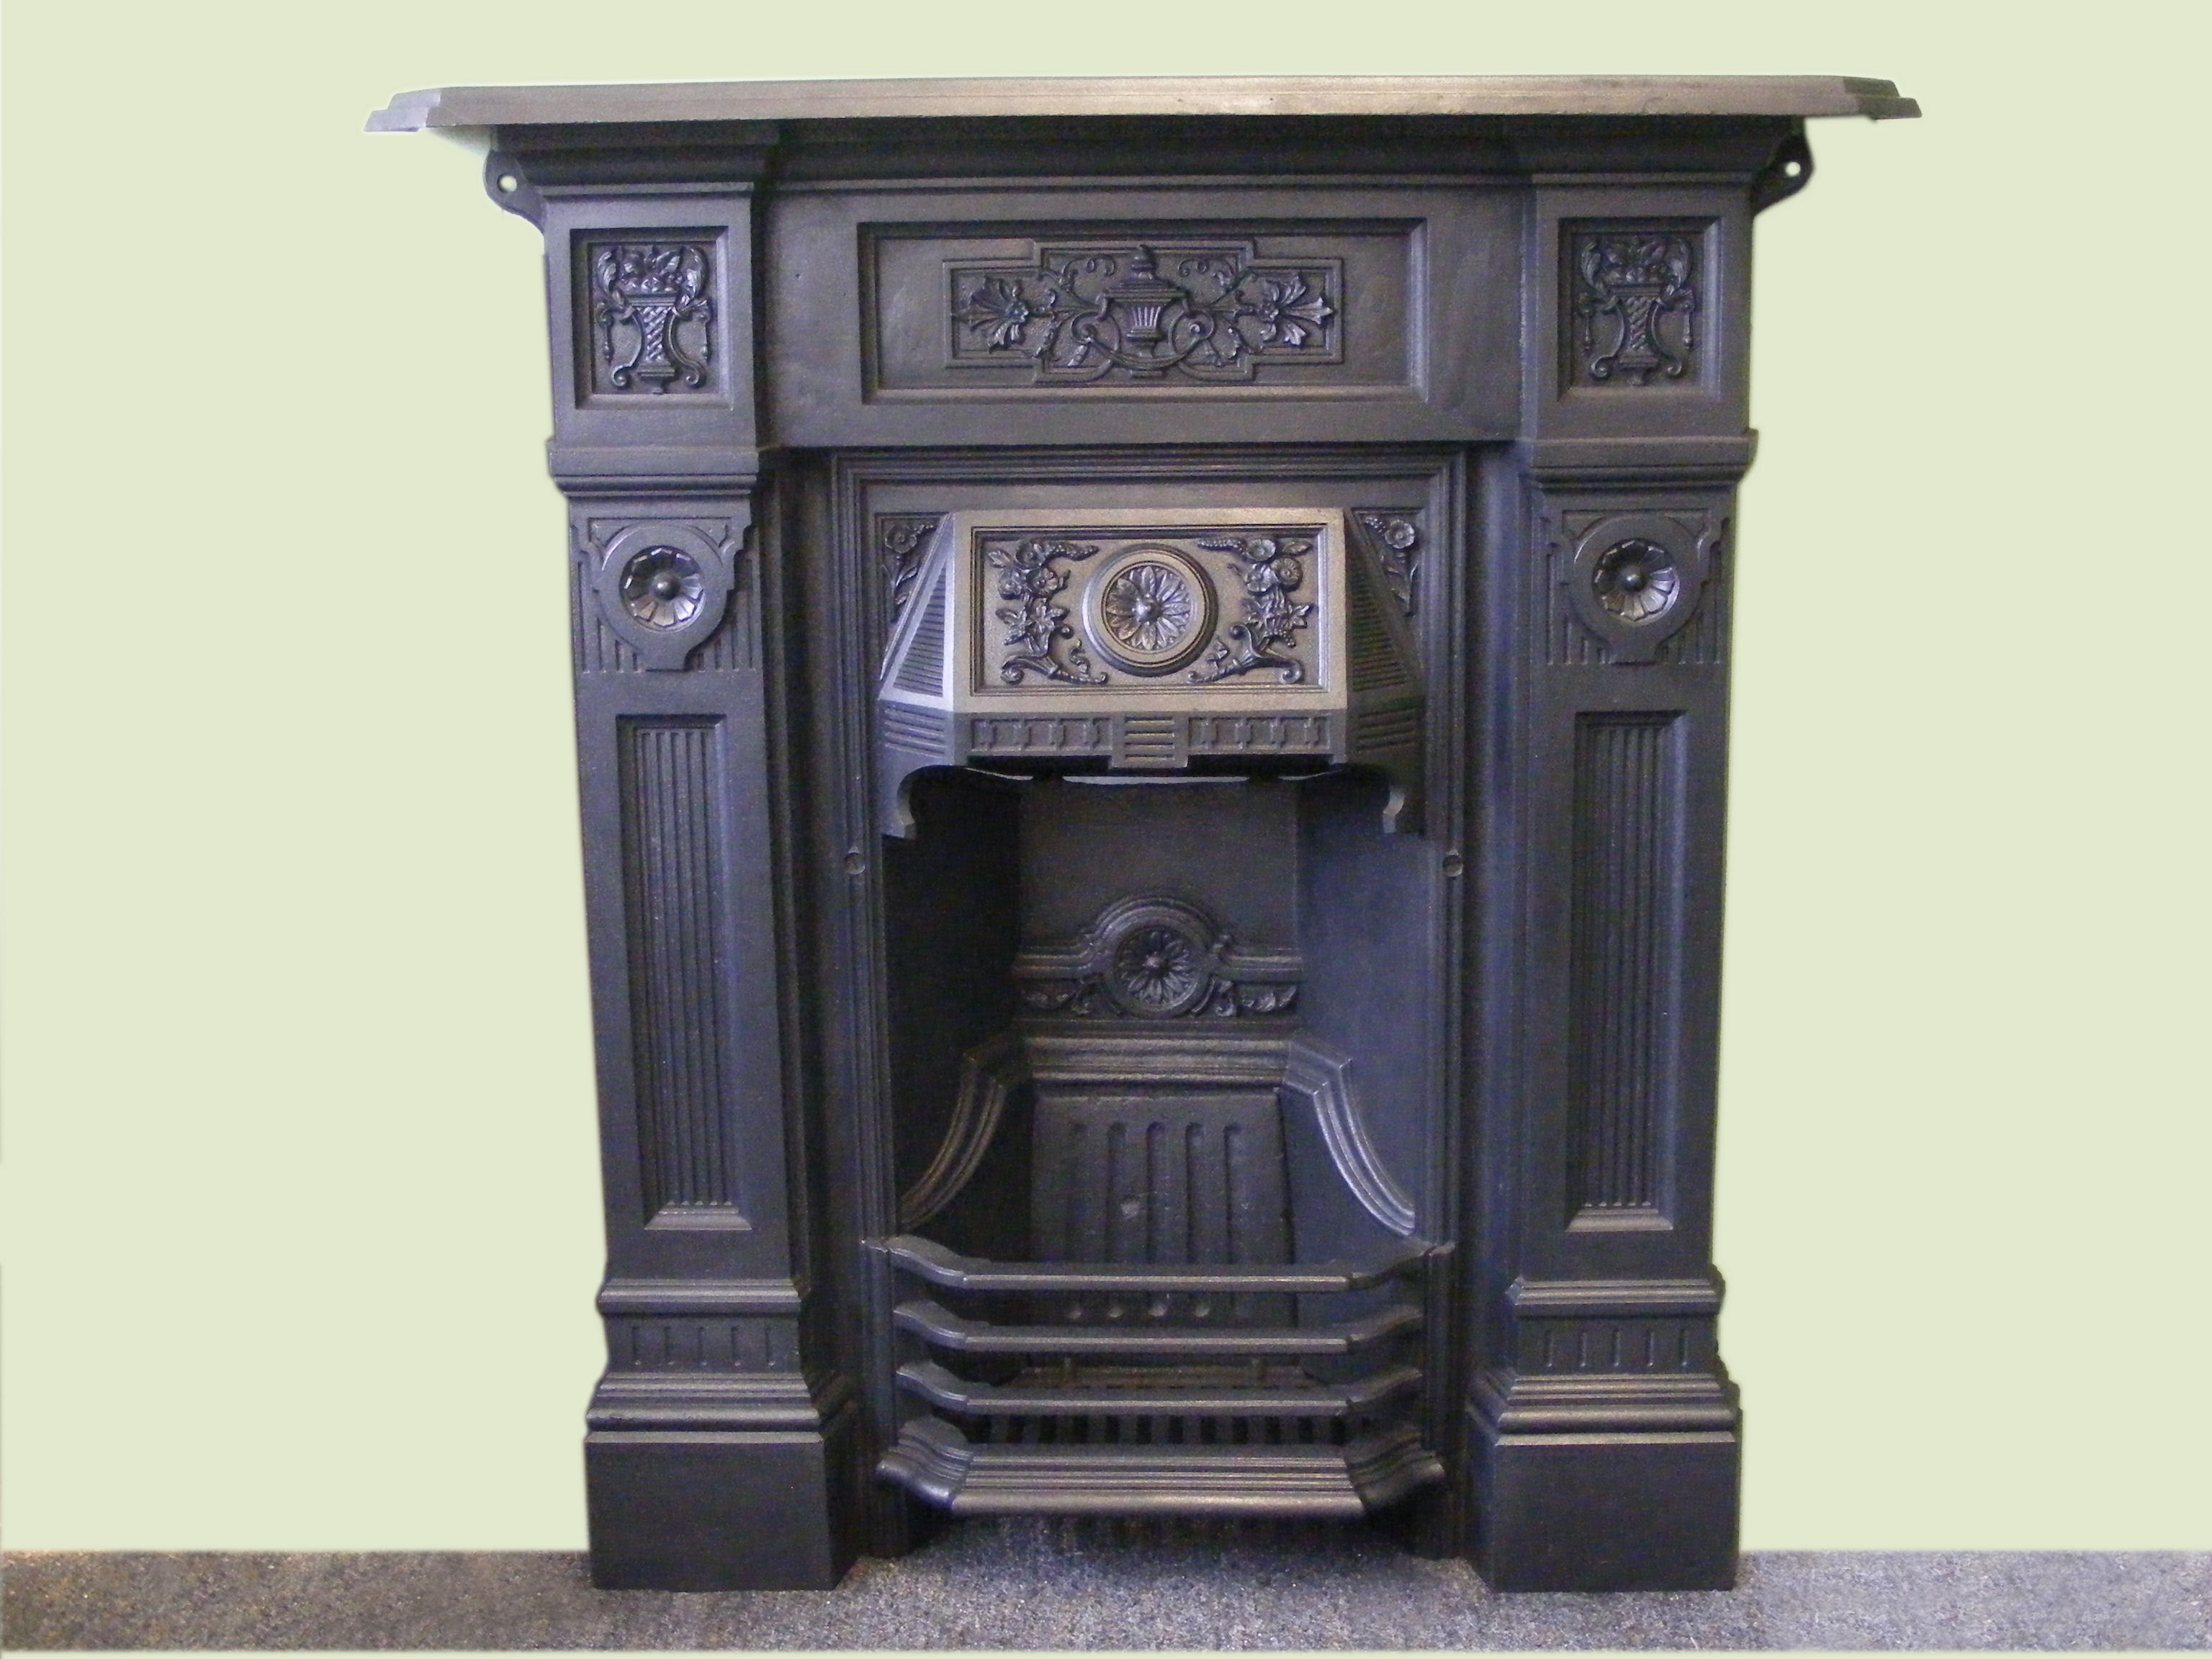 wentworth fireplace polish cast iron fires cottage fireplaces full photo integra from of anson